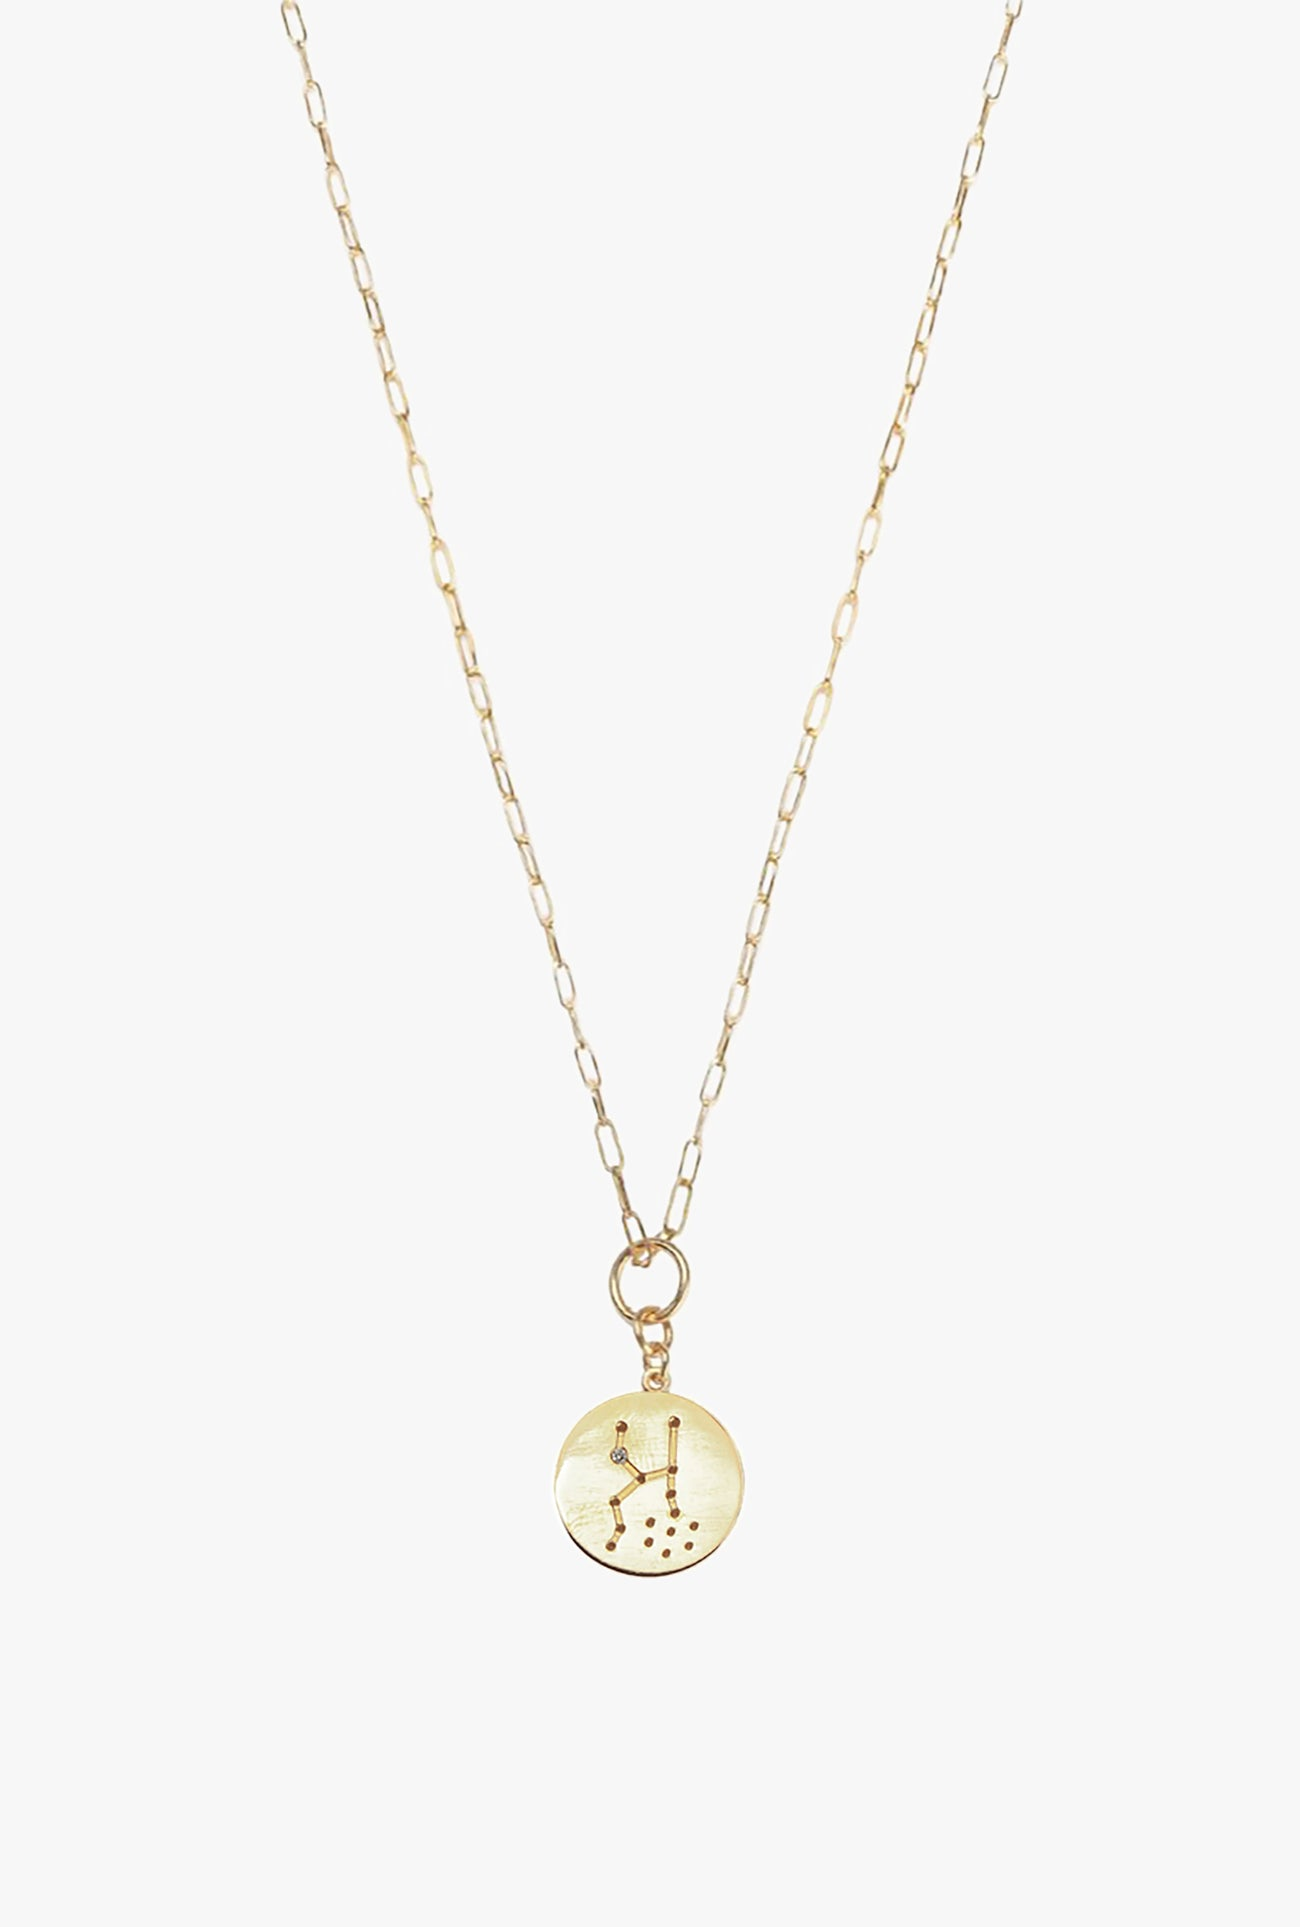 Constellation Taurus Charm Necklace